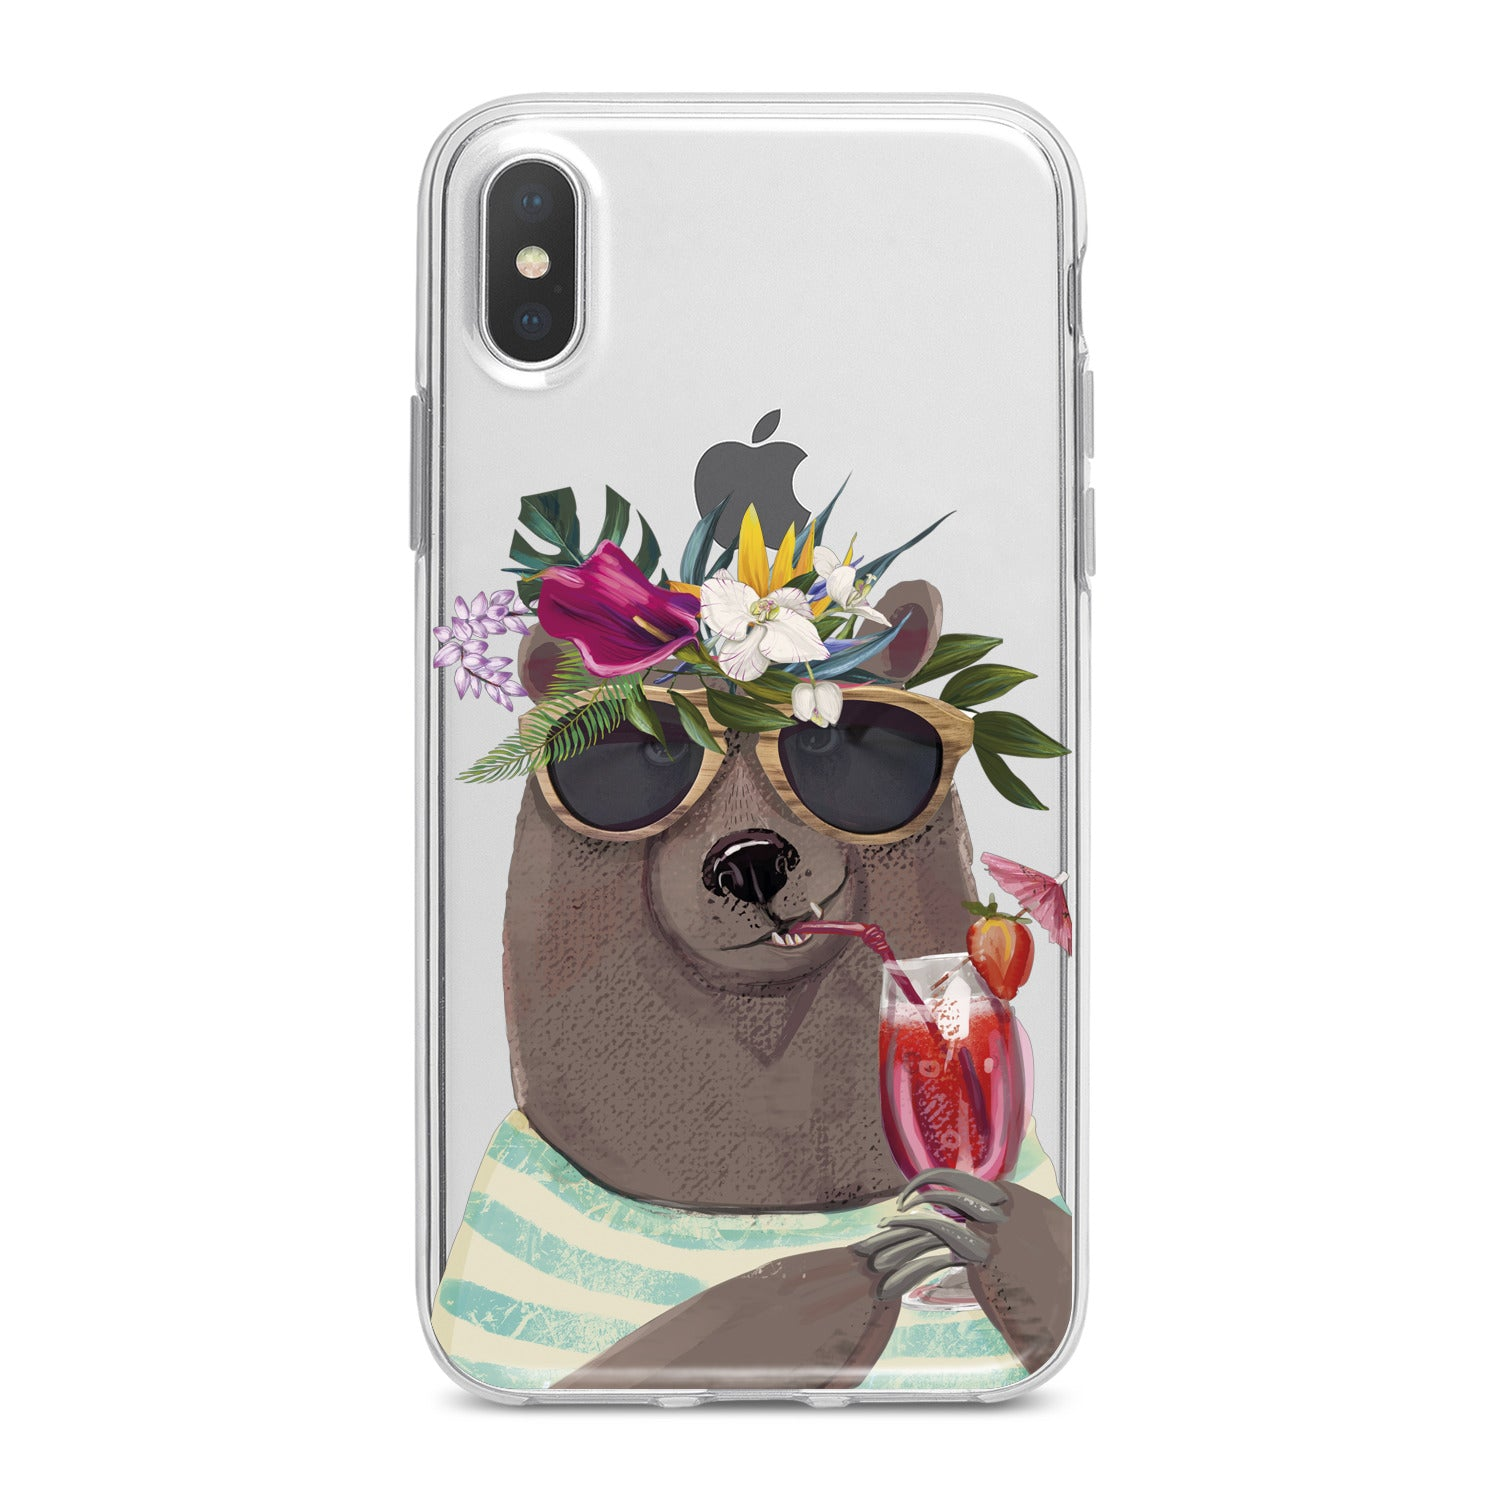 Lex Altern Summer Bear Phone Case for your iPhone & Android phone.